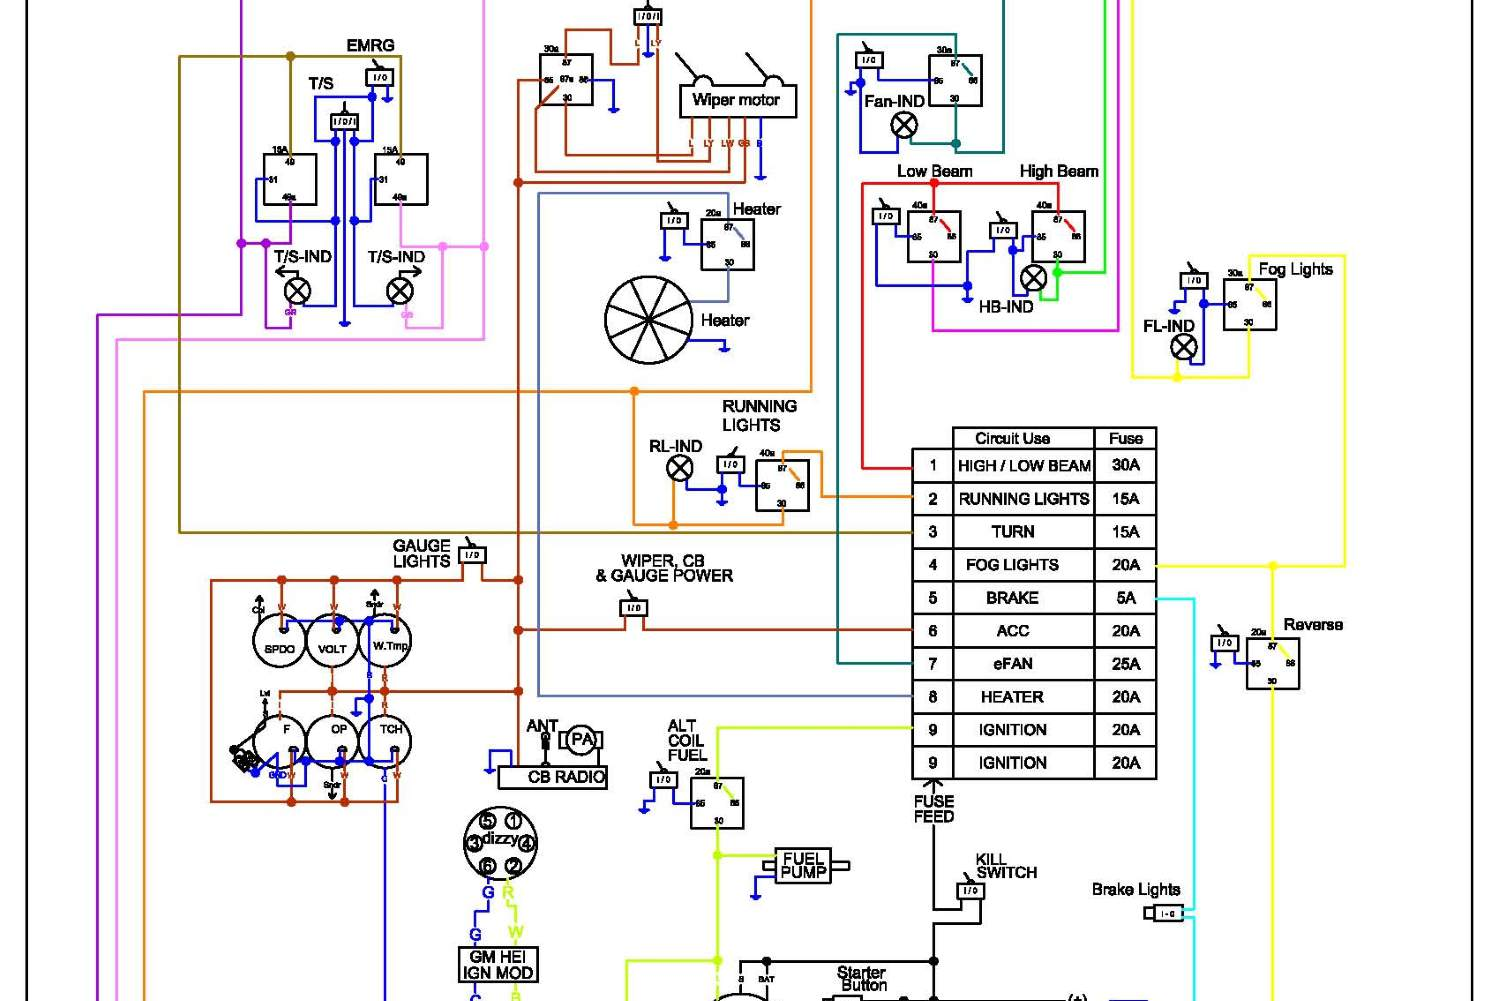 2005 Ford F 150 Fuel Sending Unit Wiring - Wiring Diagrams A C Unit Wiring Diagram on